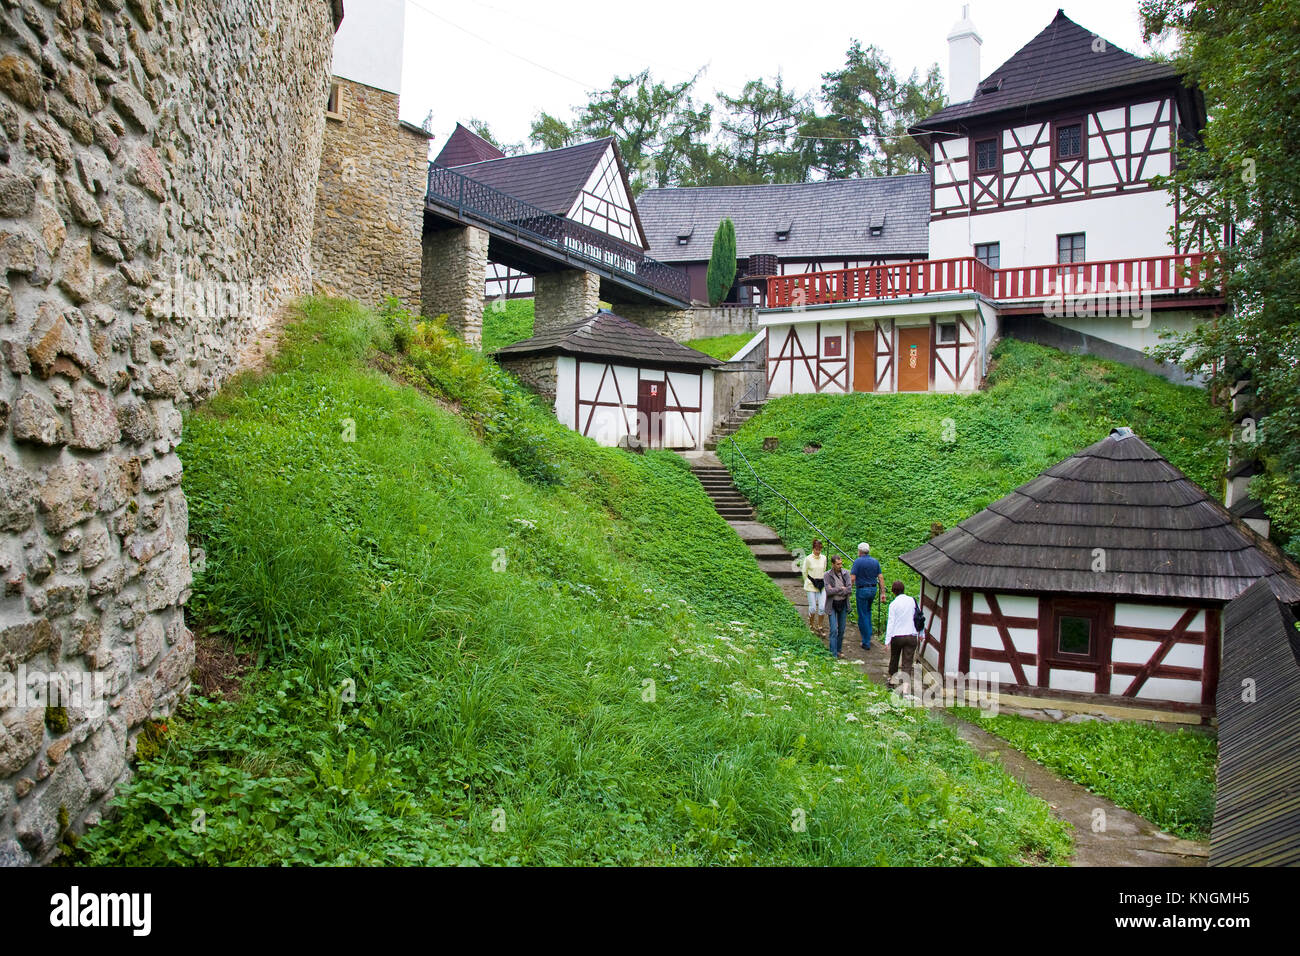 castle with open-air museum Seeberg, village Ostroh, Karlovy vary region, Czech republic Stock Photo